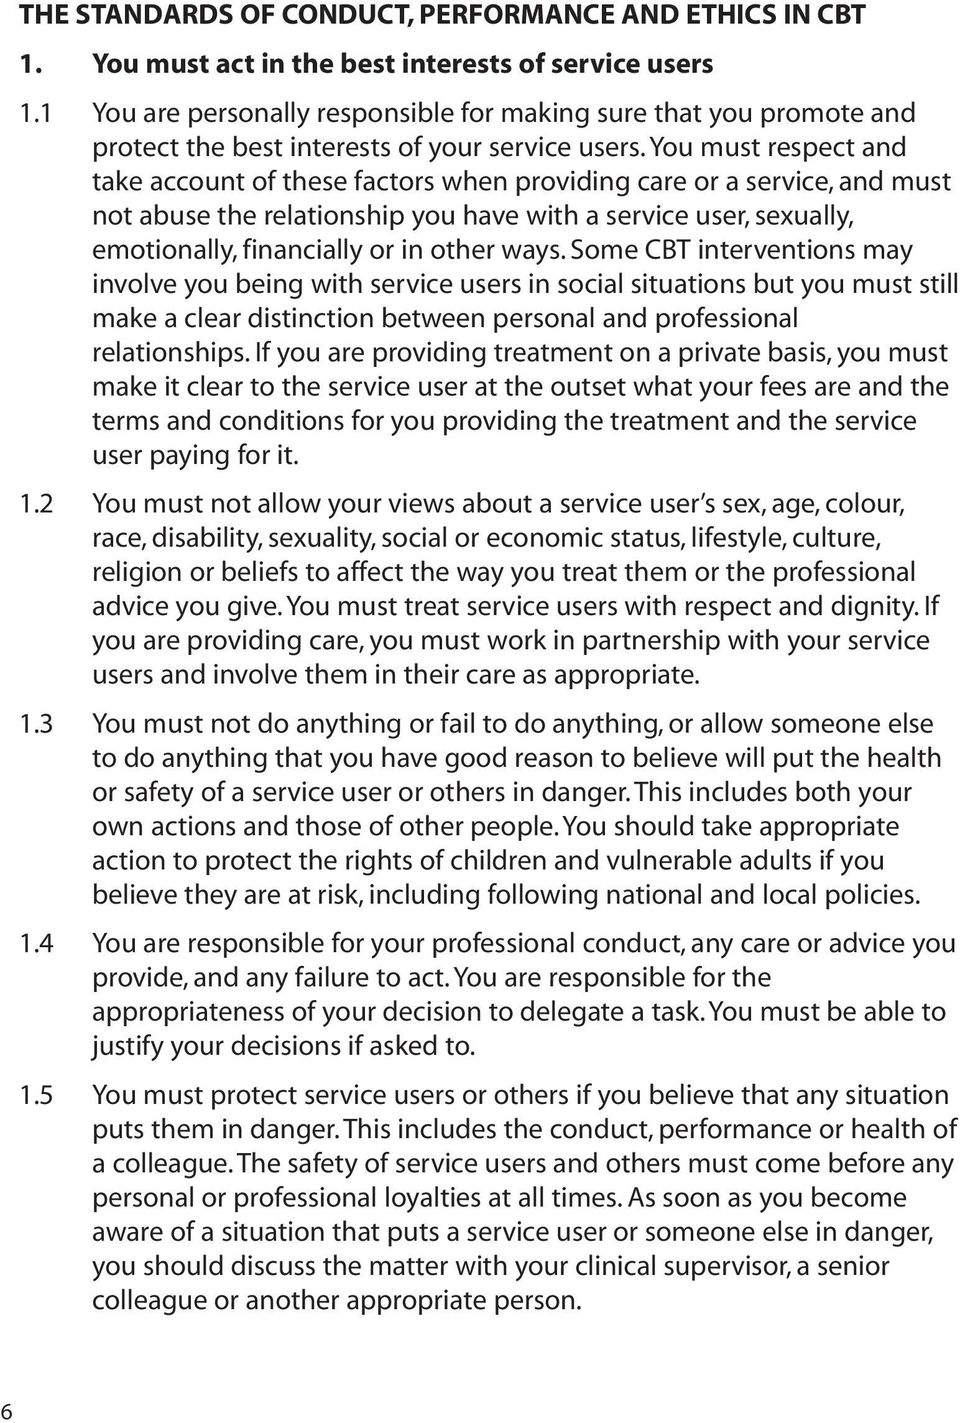 You must respect and take account of these factors when providing care or a service, and must not abuse the relationship you have with a service user, sexually, emotionally, financially or in other